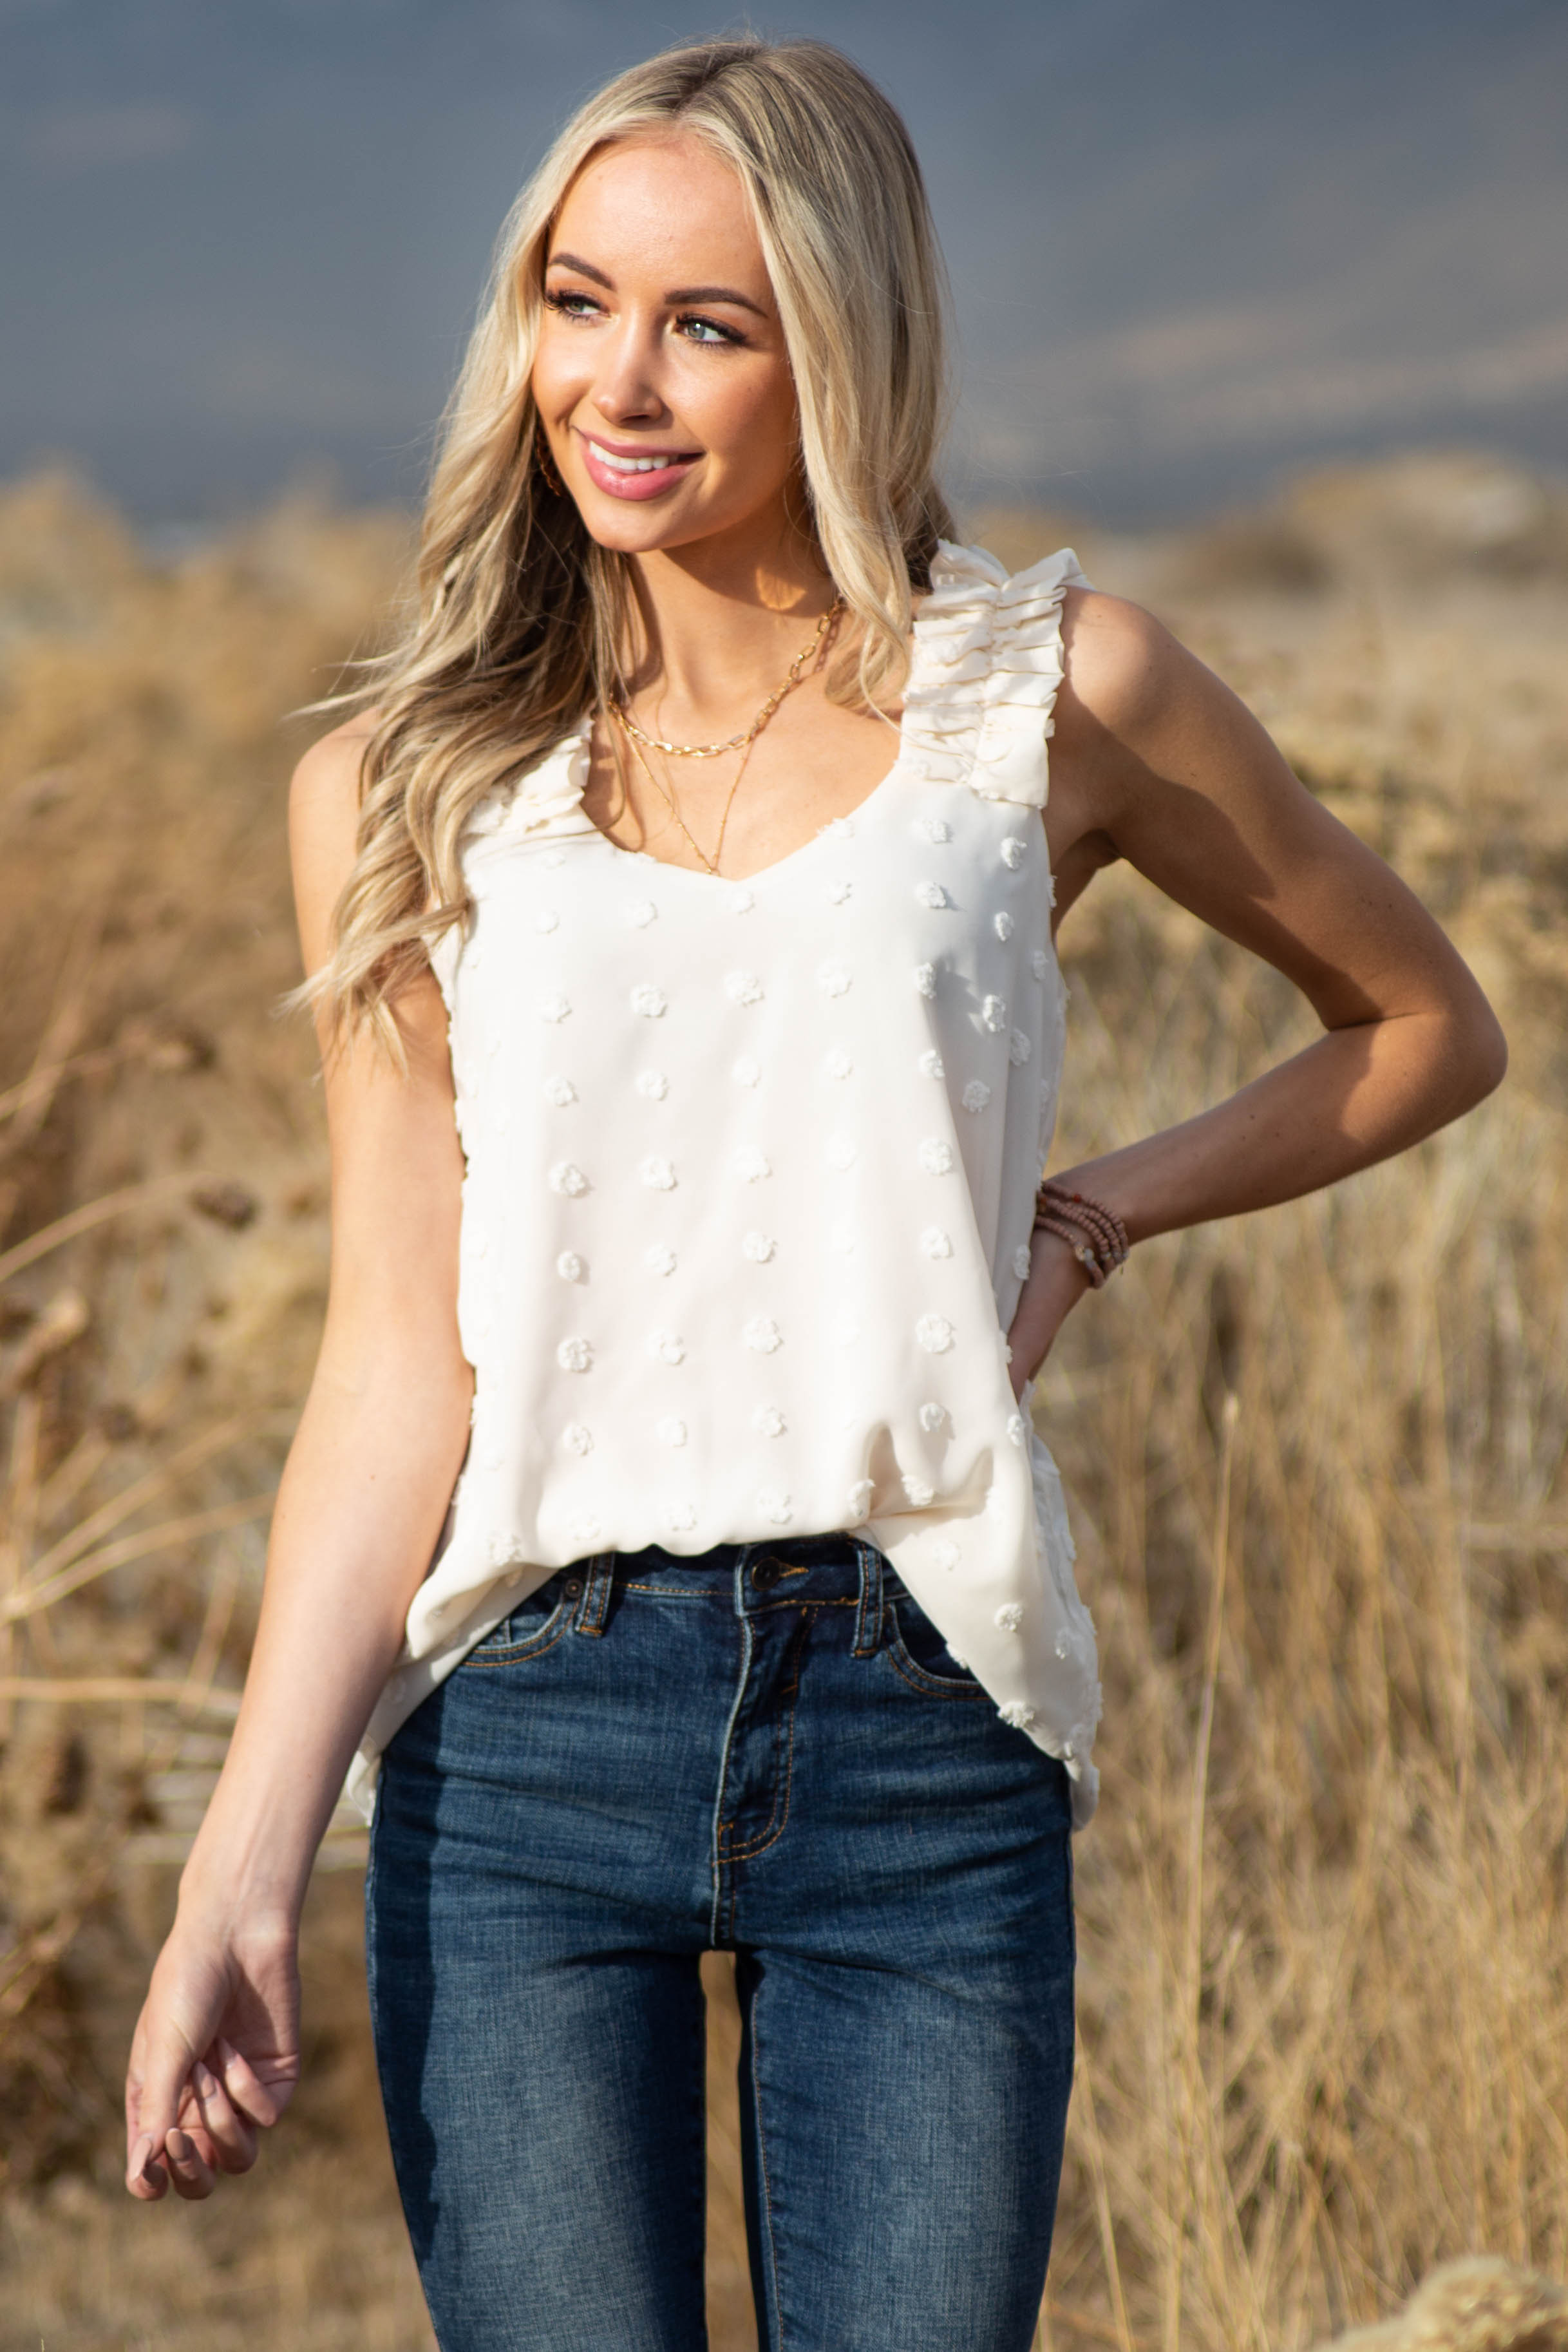 Beige Swiss Dot Woven Sleeveless Top with Ruffled Straps